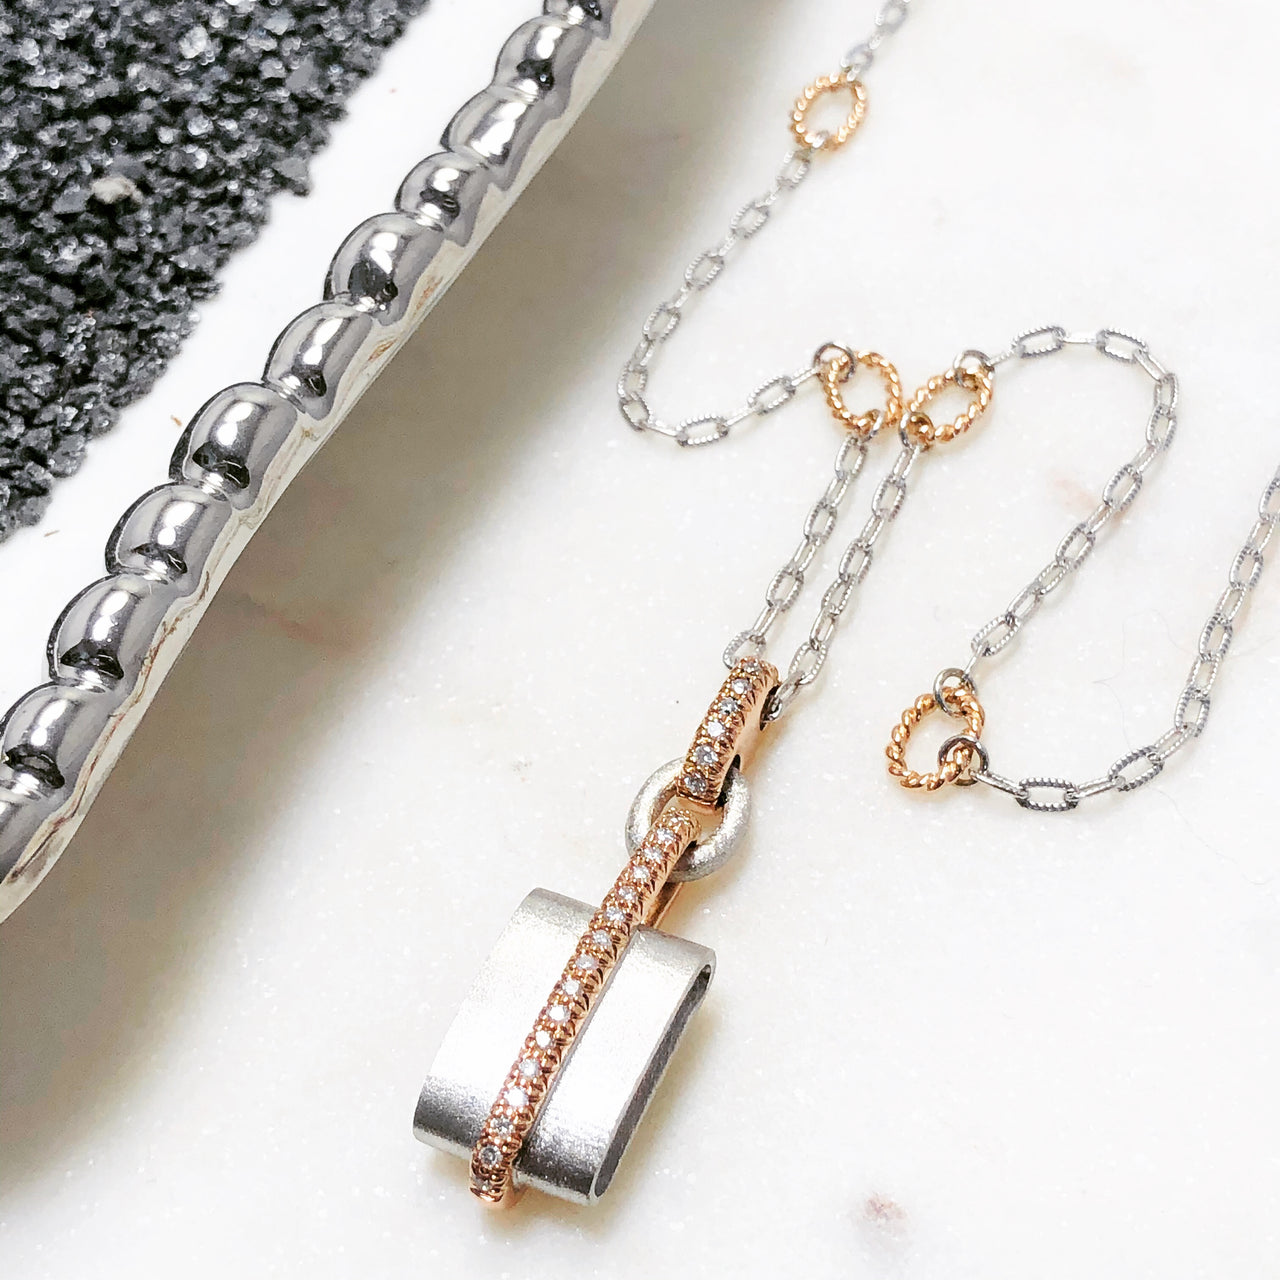 Argentum Silver and 14K Rose Gold Diamond Necklace.